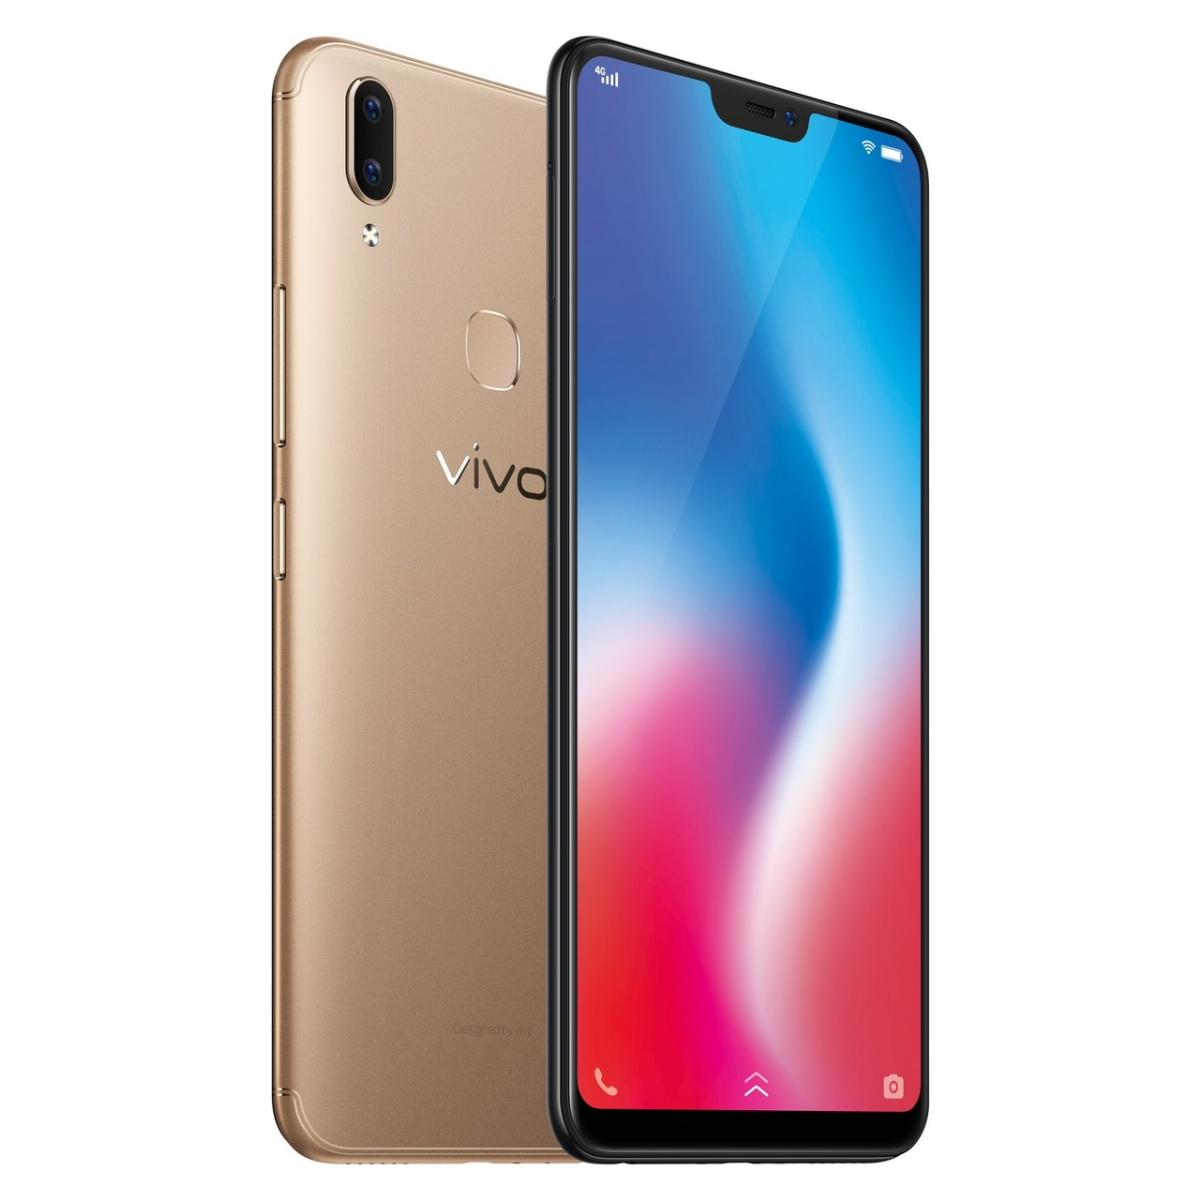 Vivo launches V9 with dual rear camera